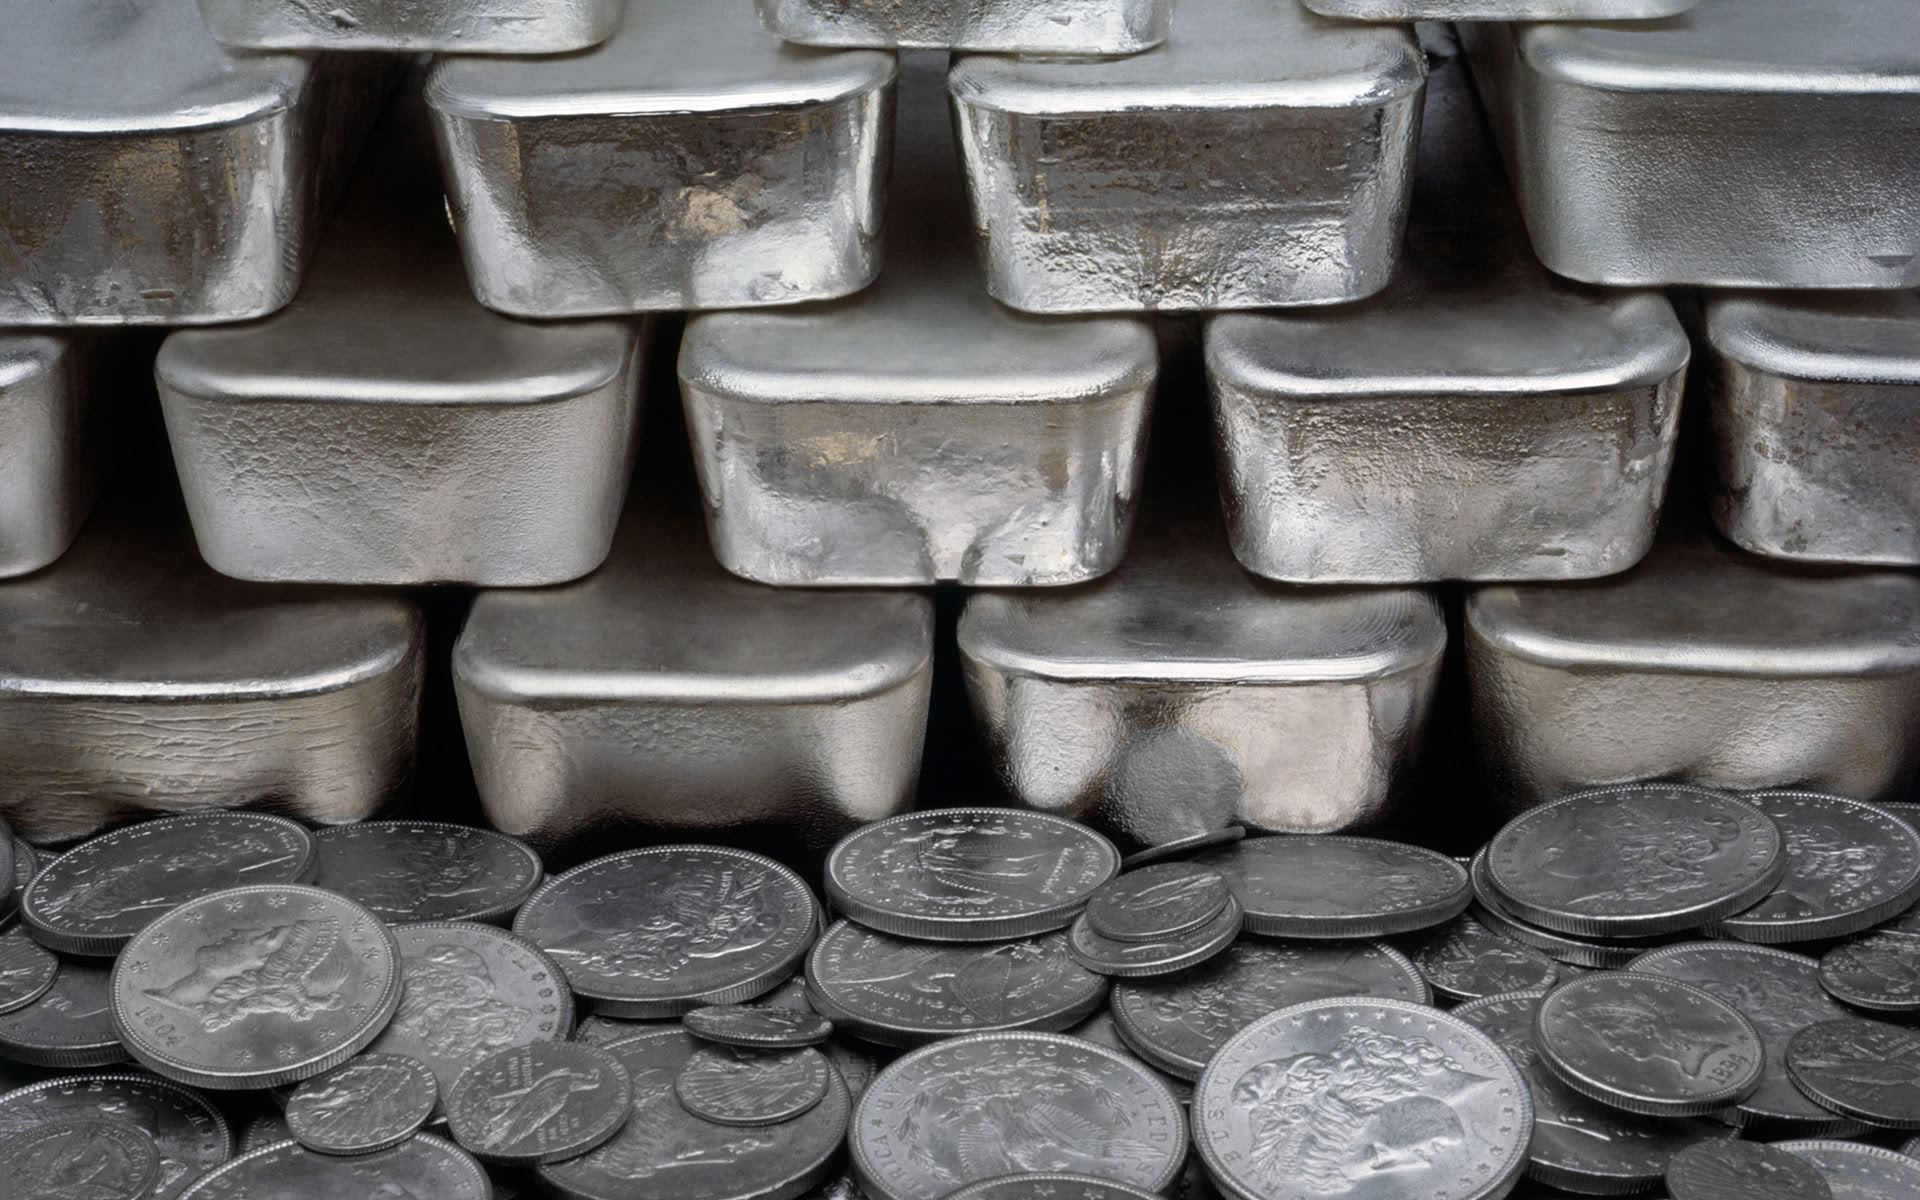 Silver Bullion Buyer's Guide To Help Diversify Your Investment ...